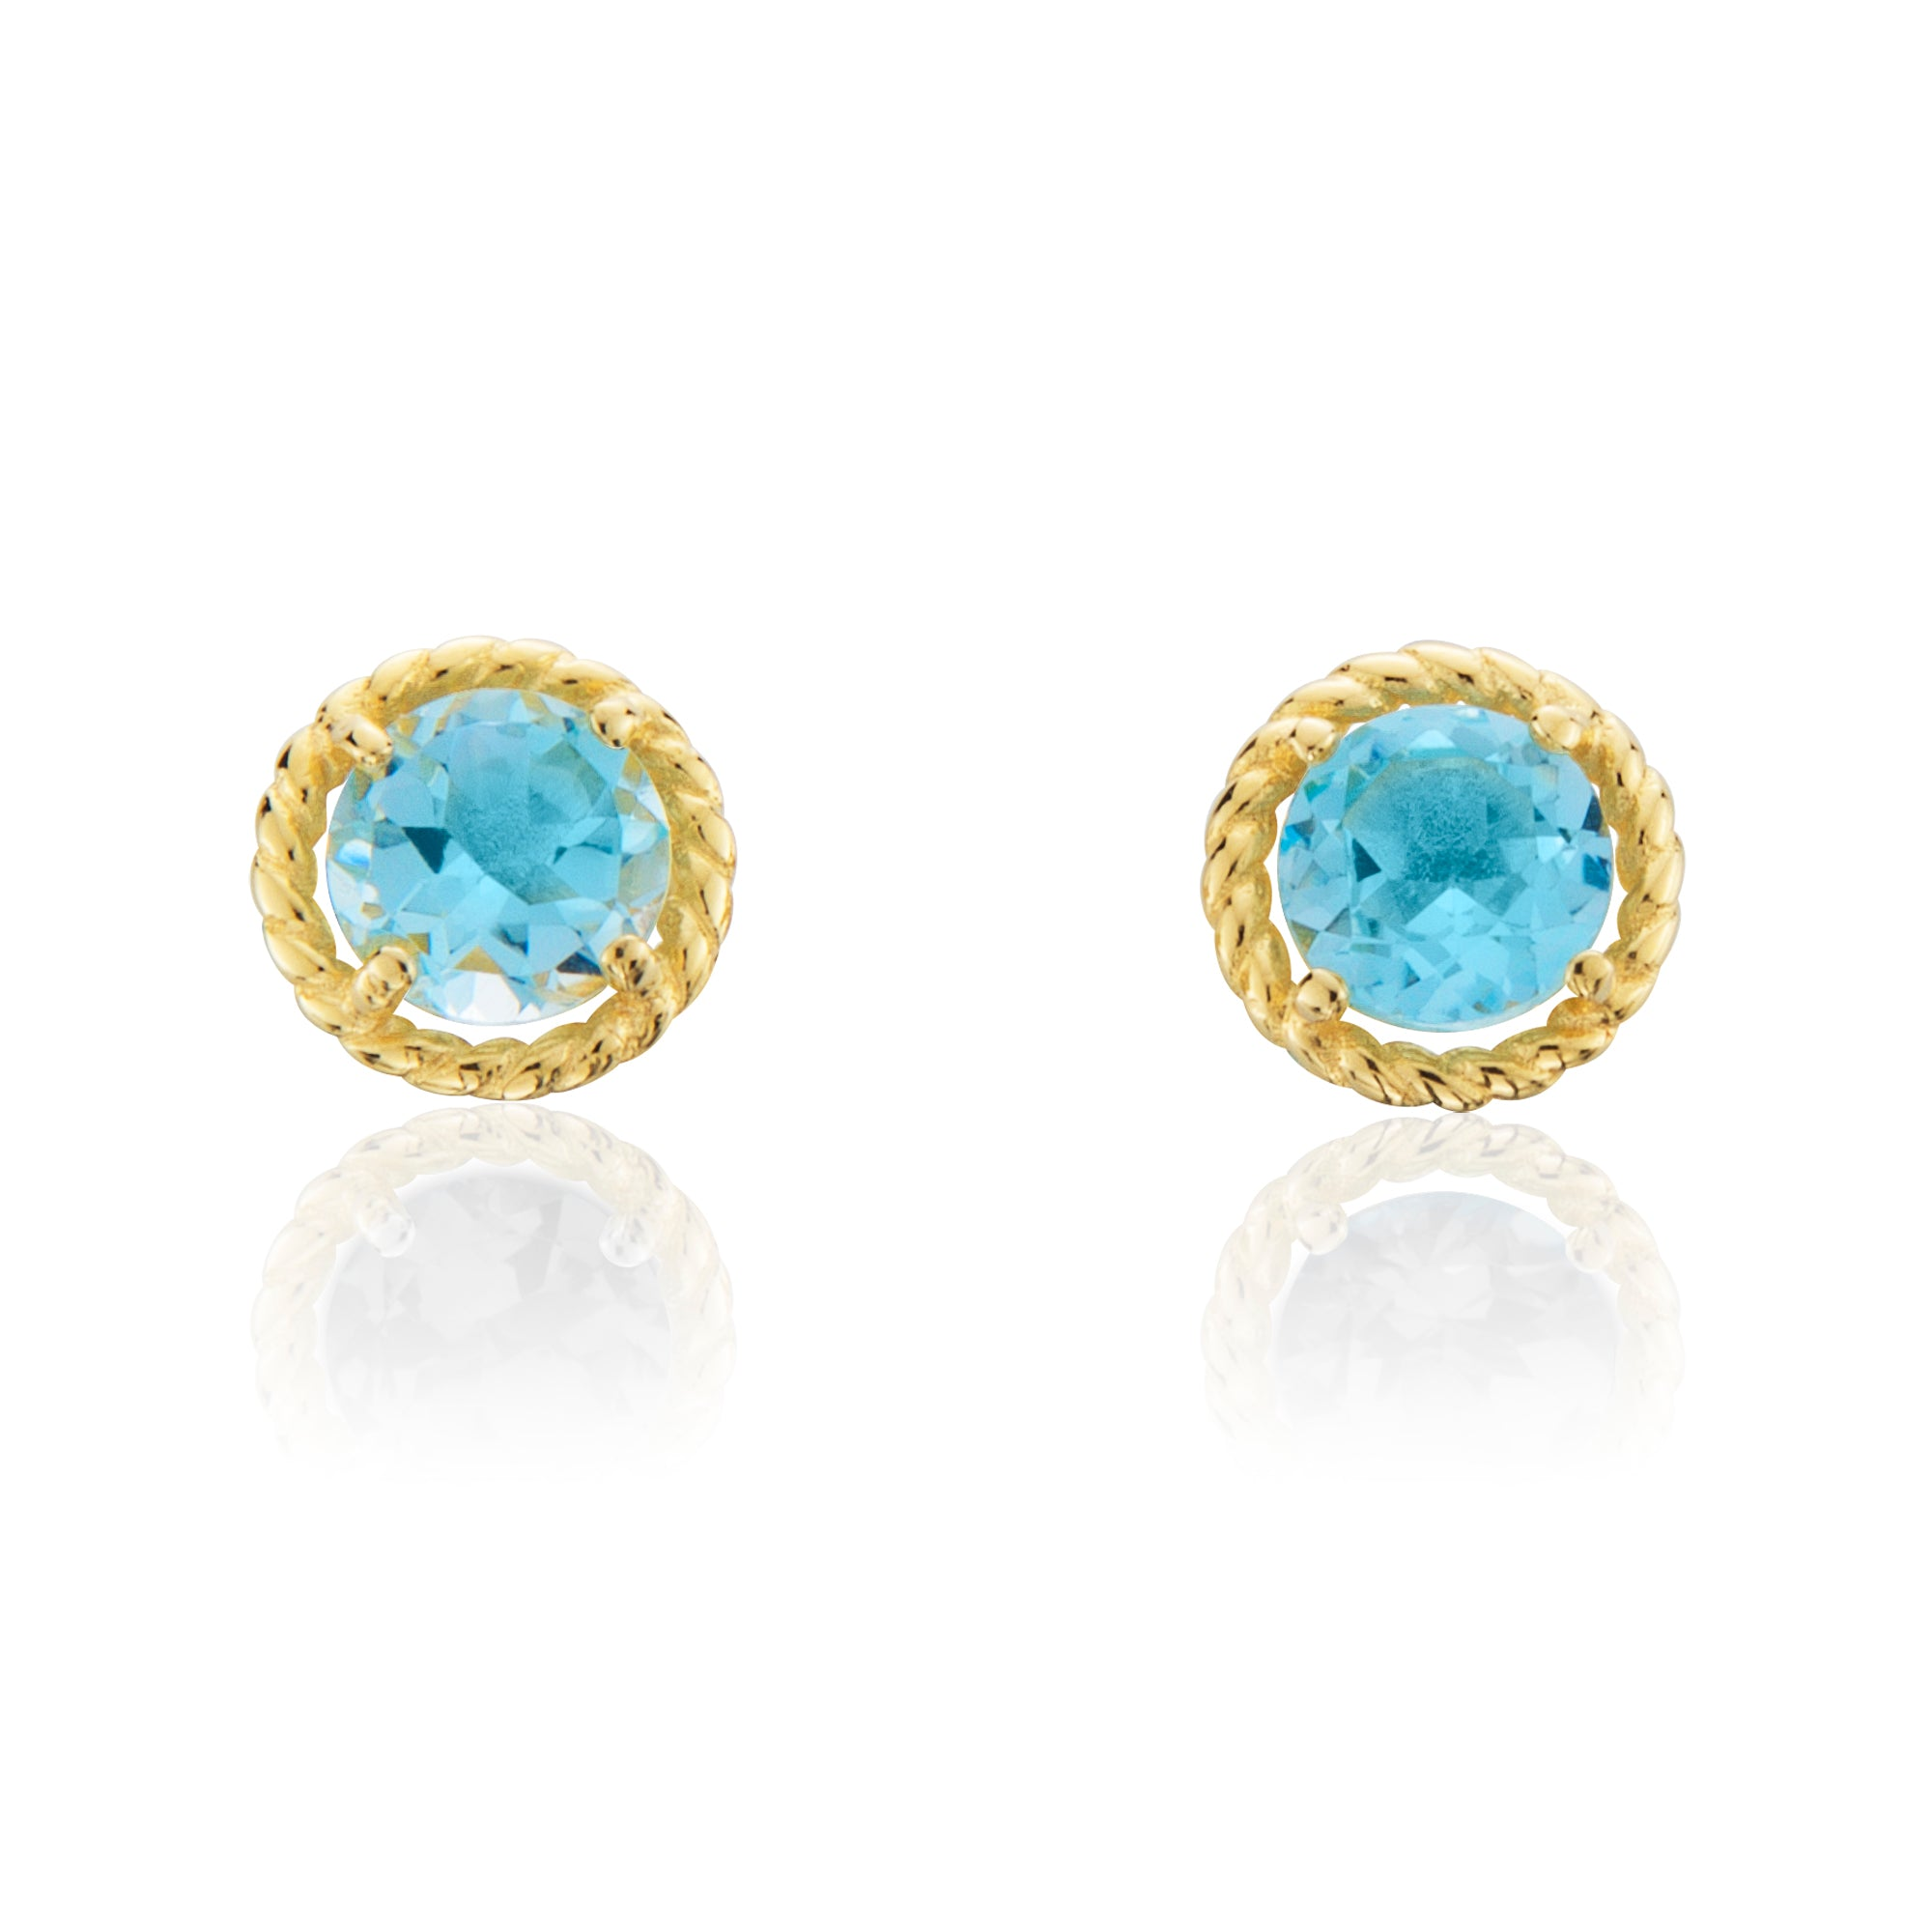 chandeliers jewellery blue alarri earring ctw with topaz p gold solid earrings product grape htm jewelry